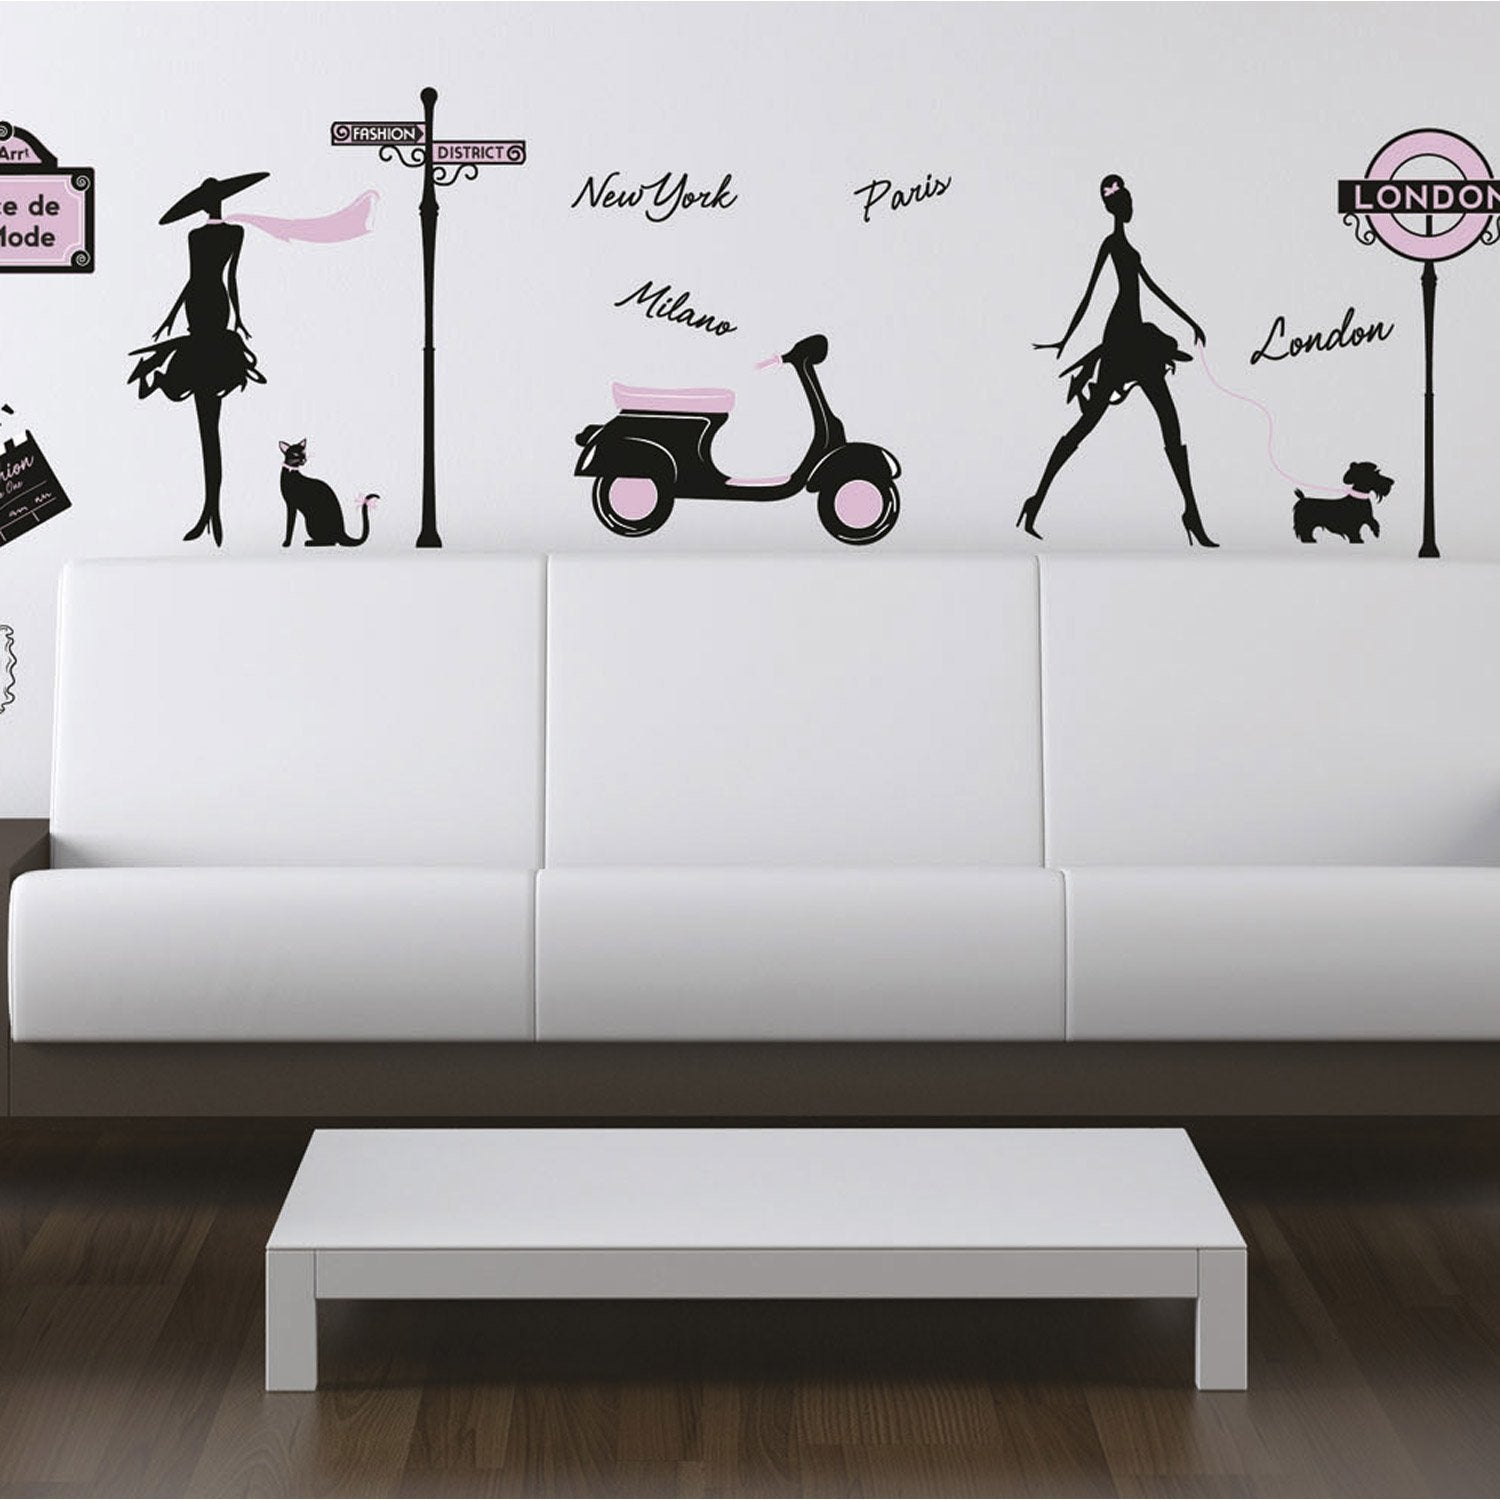 Sticker world fashion 50 cm x 70 cm leroy merlin for Leroy merlin stickers cuisine